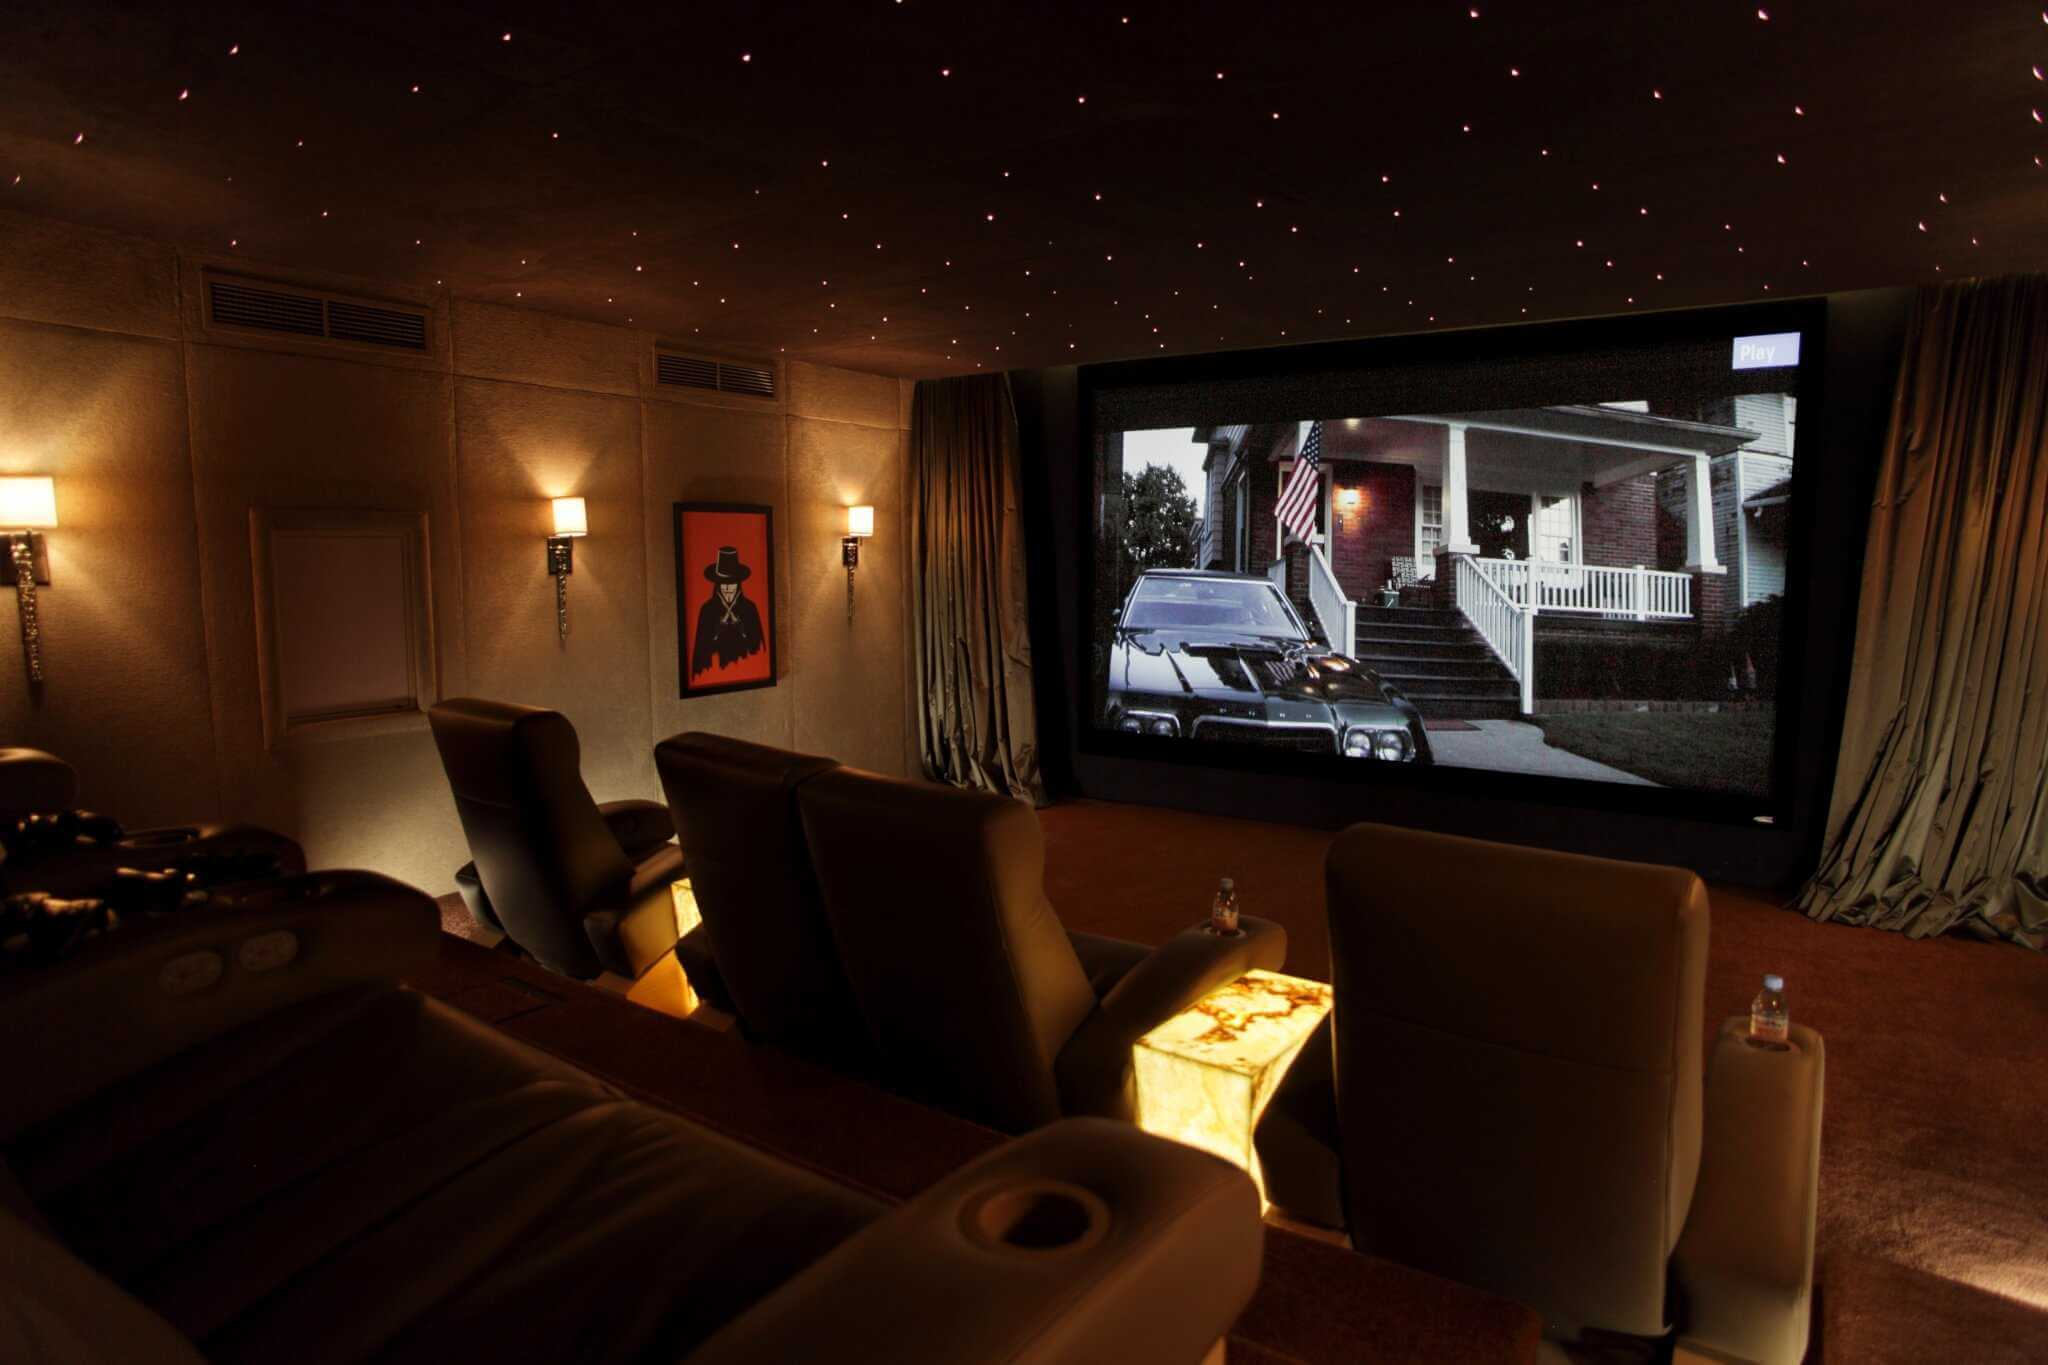 designing a home cinema cinema room dimensions. Black Bedroom Furniture Sets. Home Design Ideas